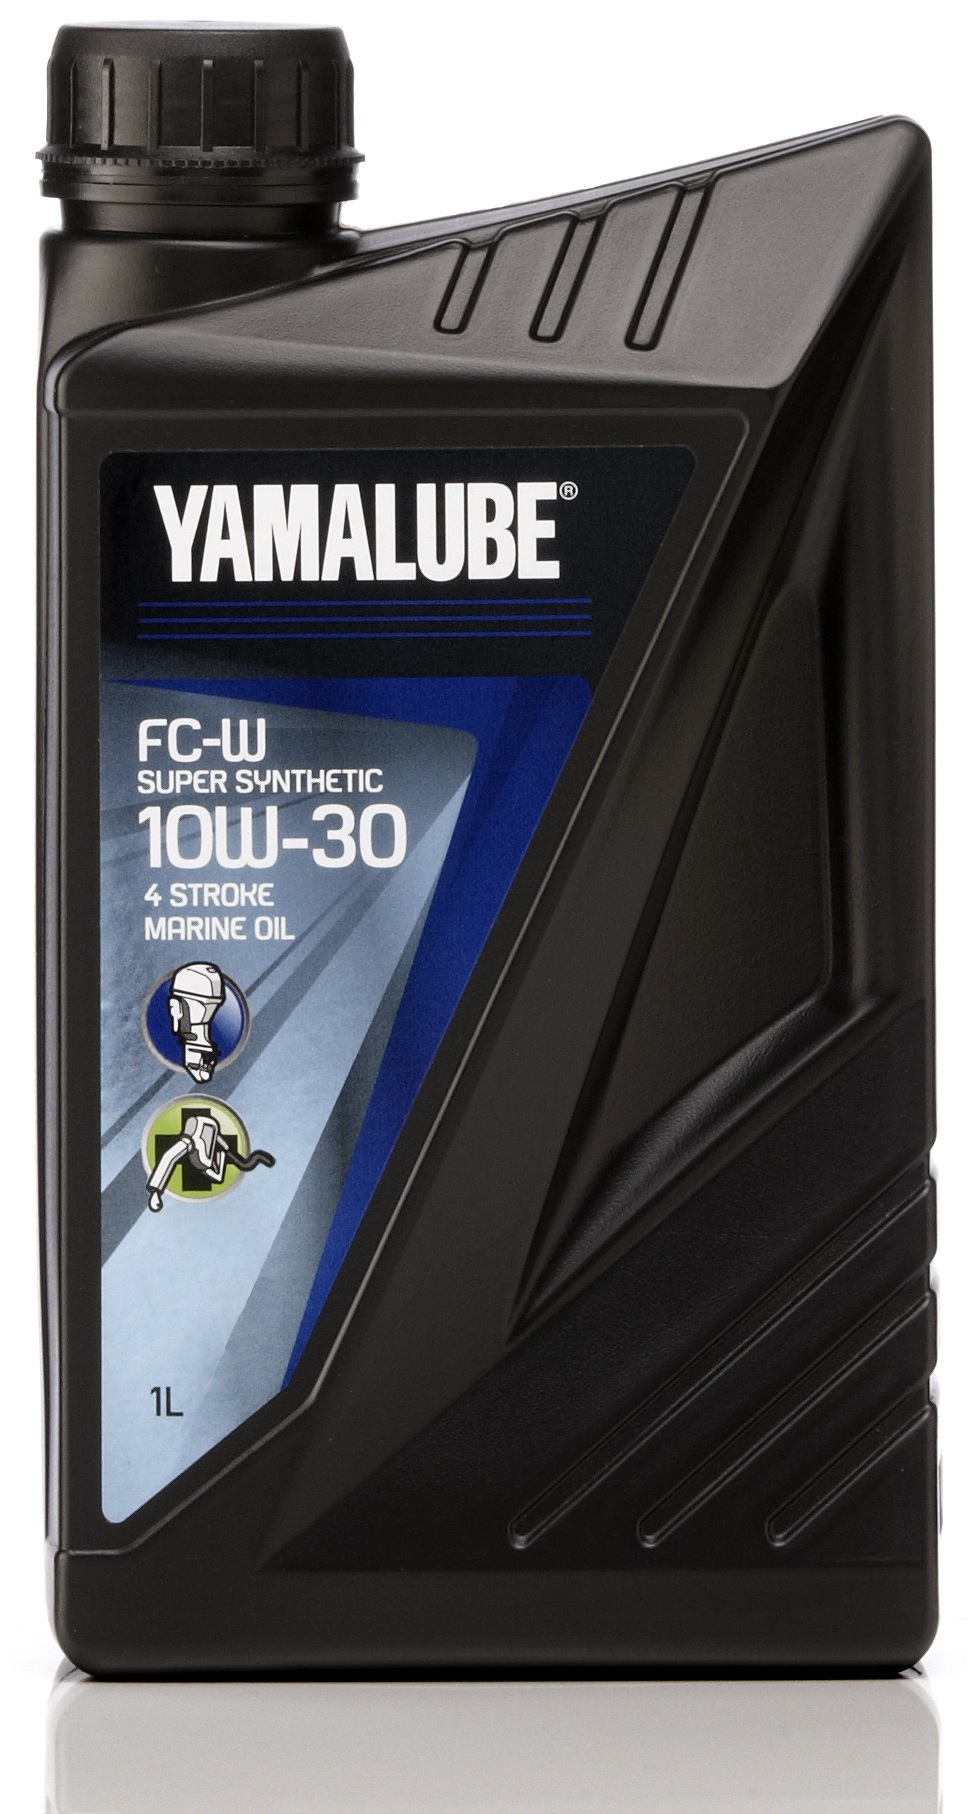 Yamalube Super Synthetic FC-W 10W-30